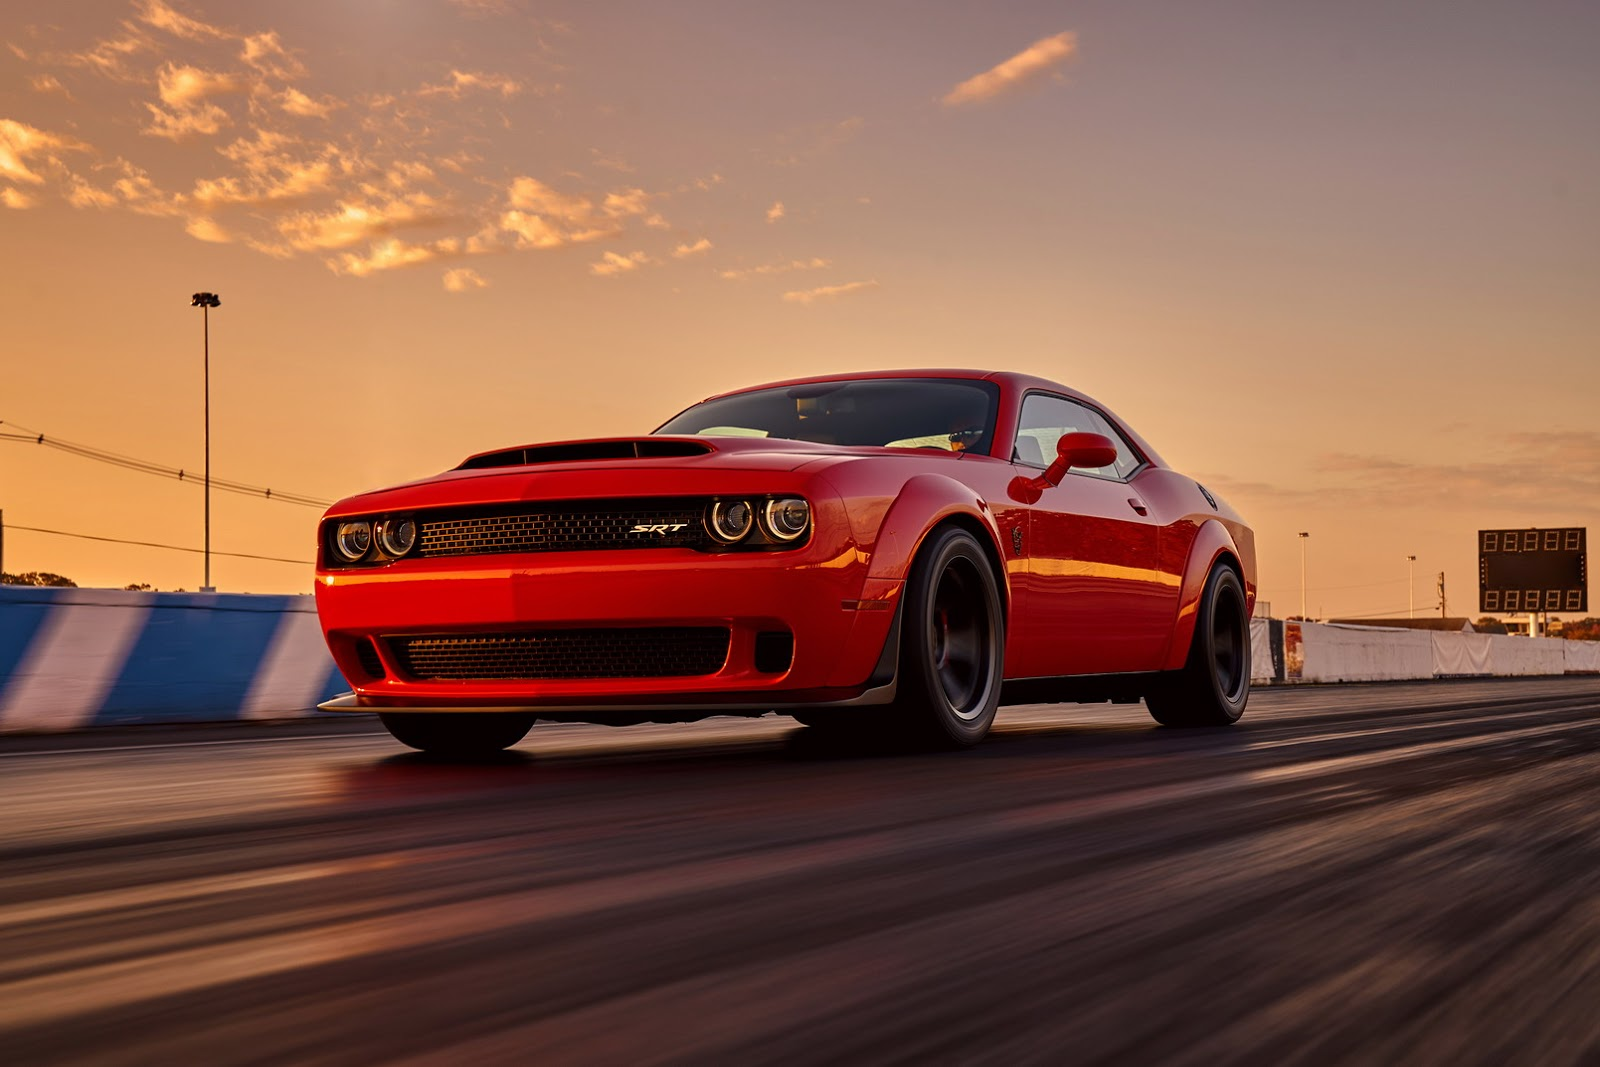 2018 Charger Demon >> 2018 Dodge Challenger SRT Demon to Debut at 2017 New York Auto Show - autoevolution